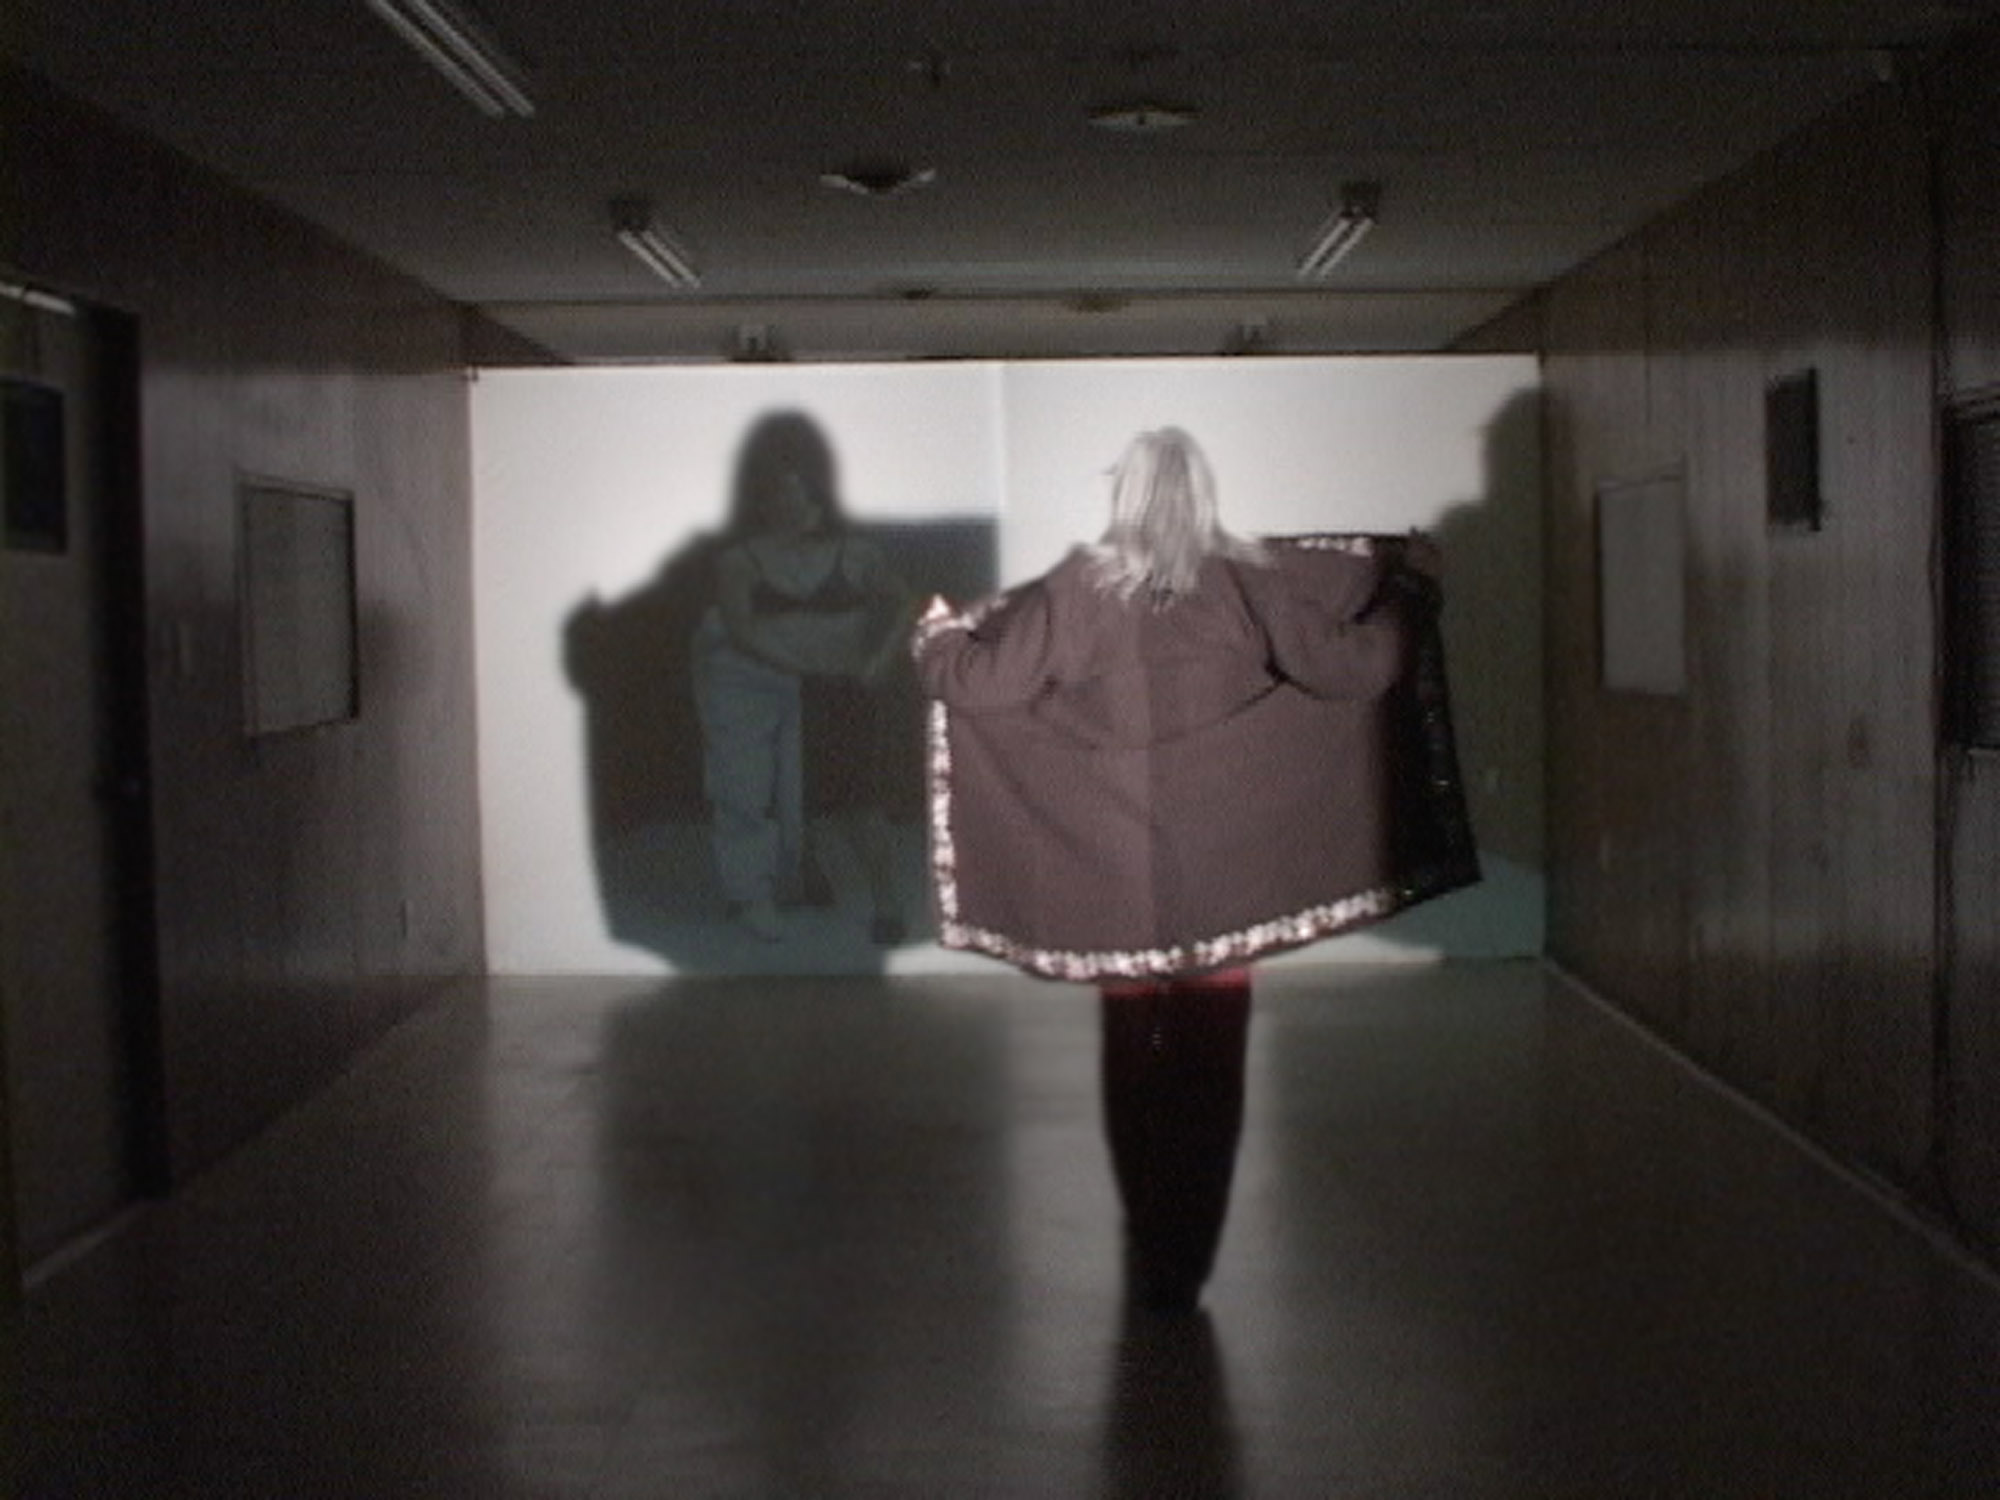 a woman creates a shadow with her jacket against a screen.